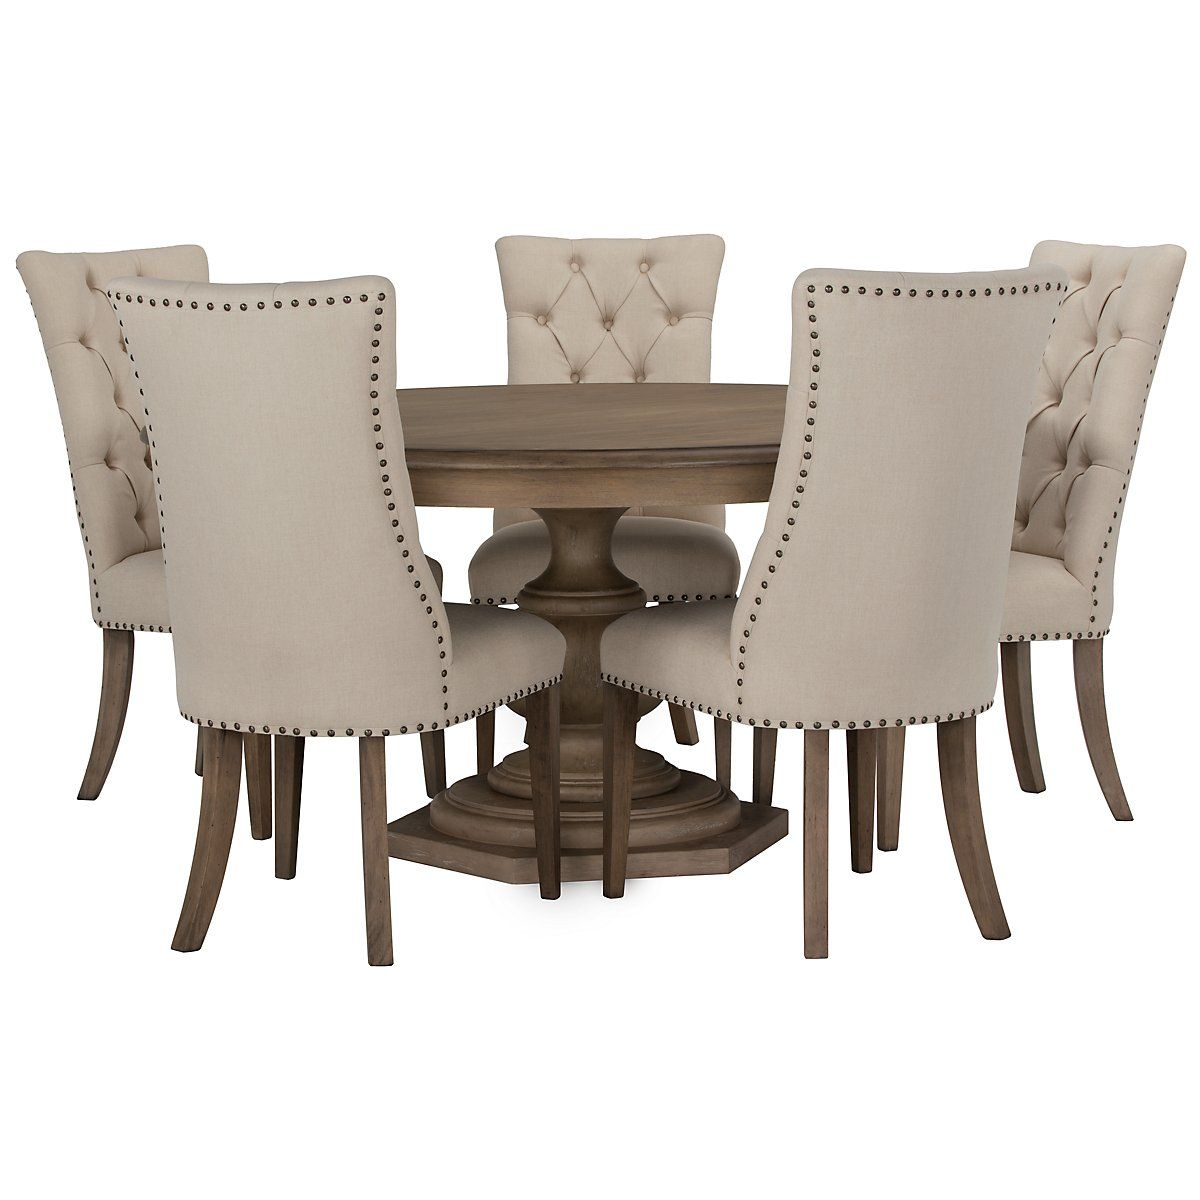 Haddie Light Tone Round Table & 4 Upholstered Chairs In